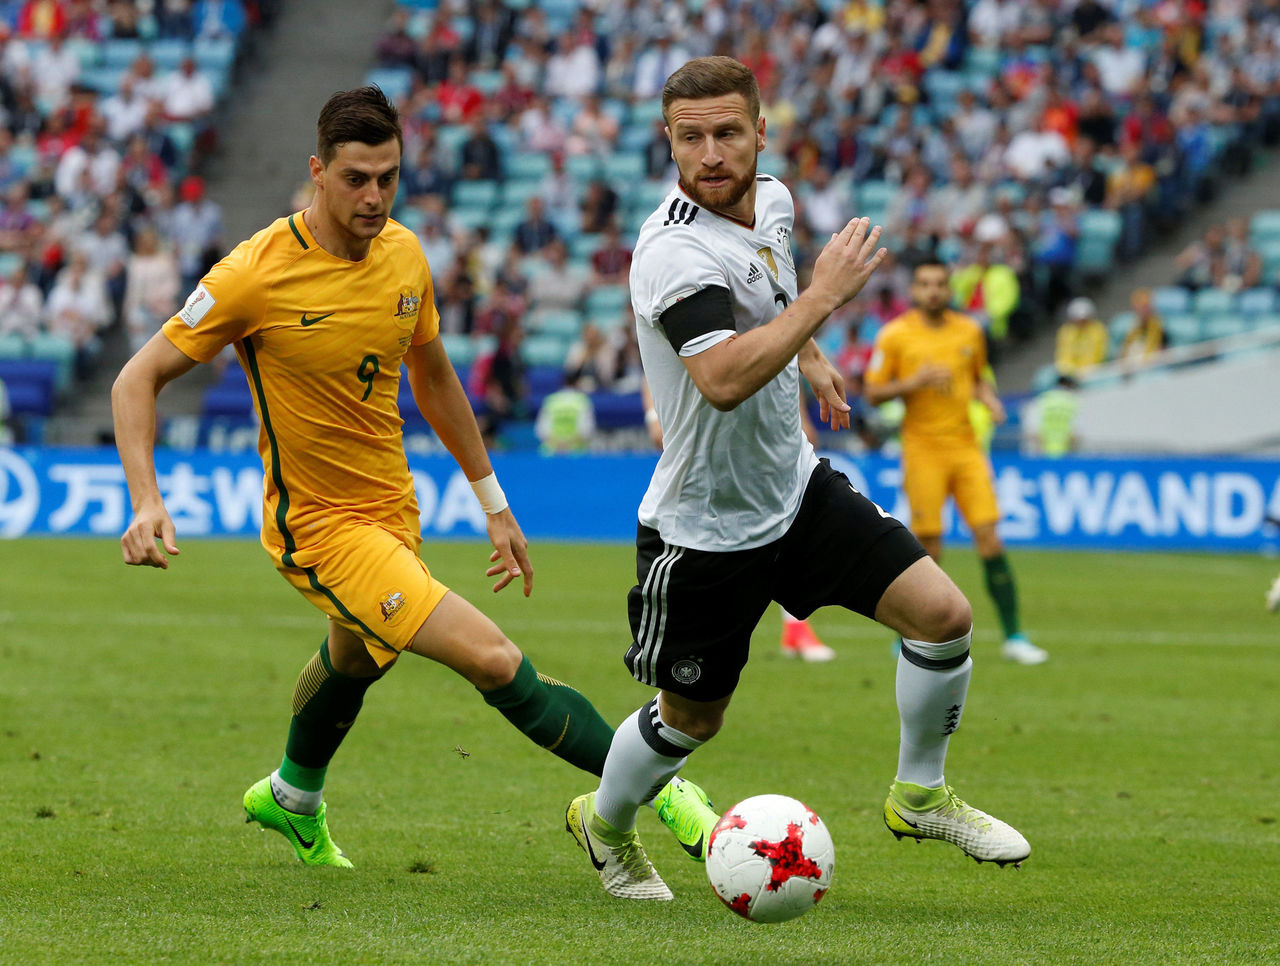 Cropped 2017 06 19t150526z 604506022 rc165e9eb9f0 rtrmadp 3 soccer confederations aus ger